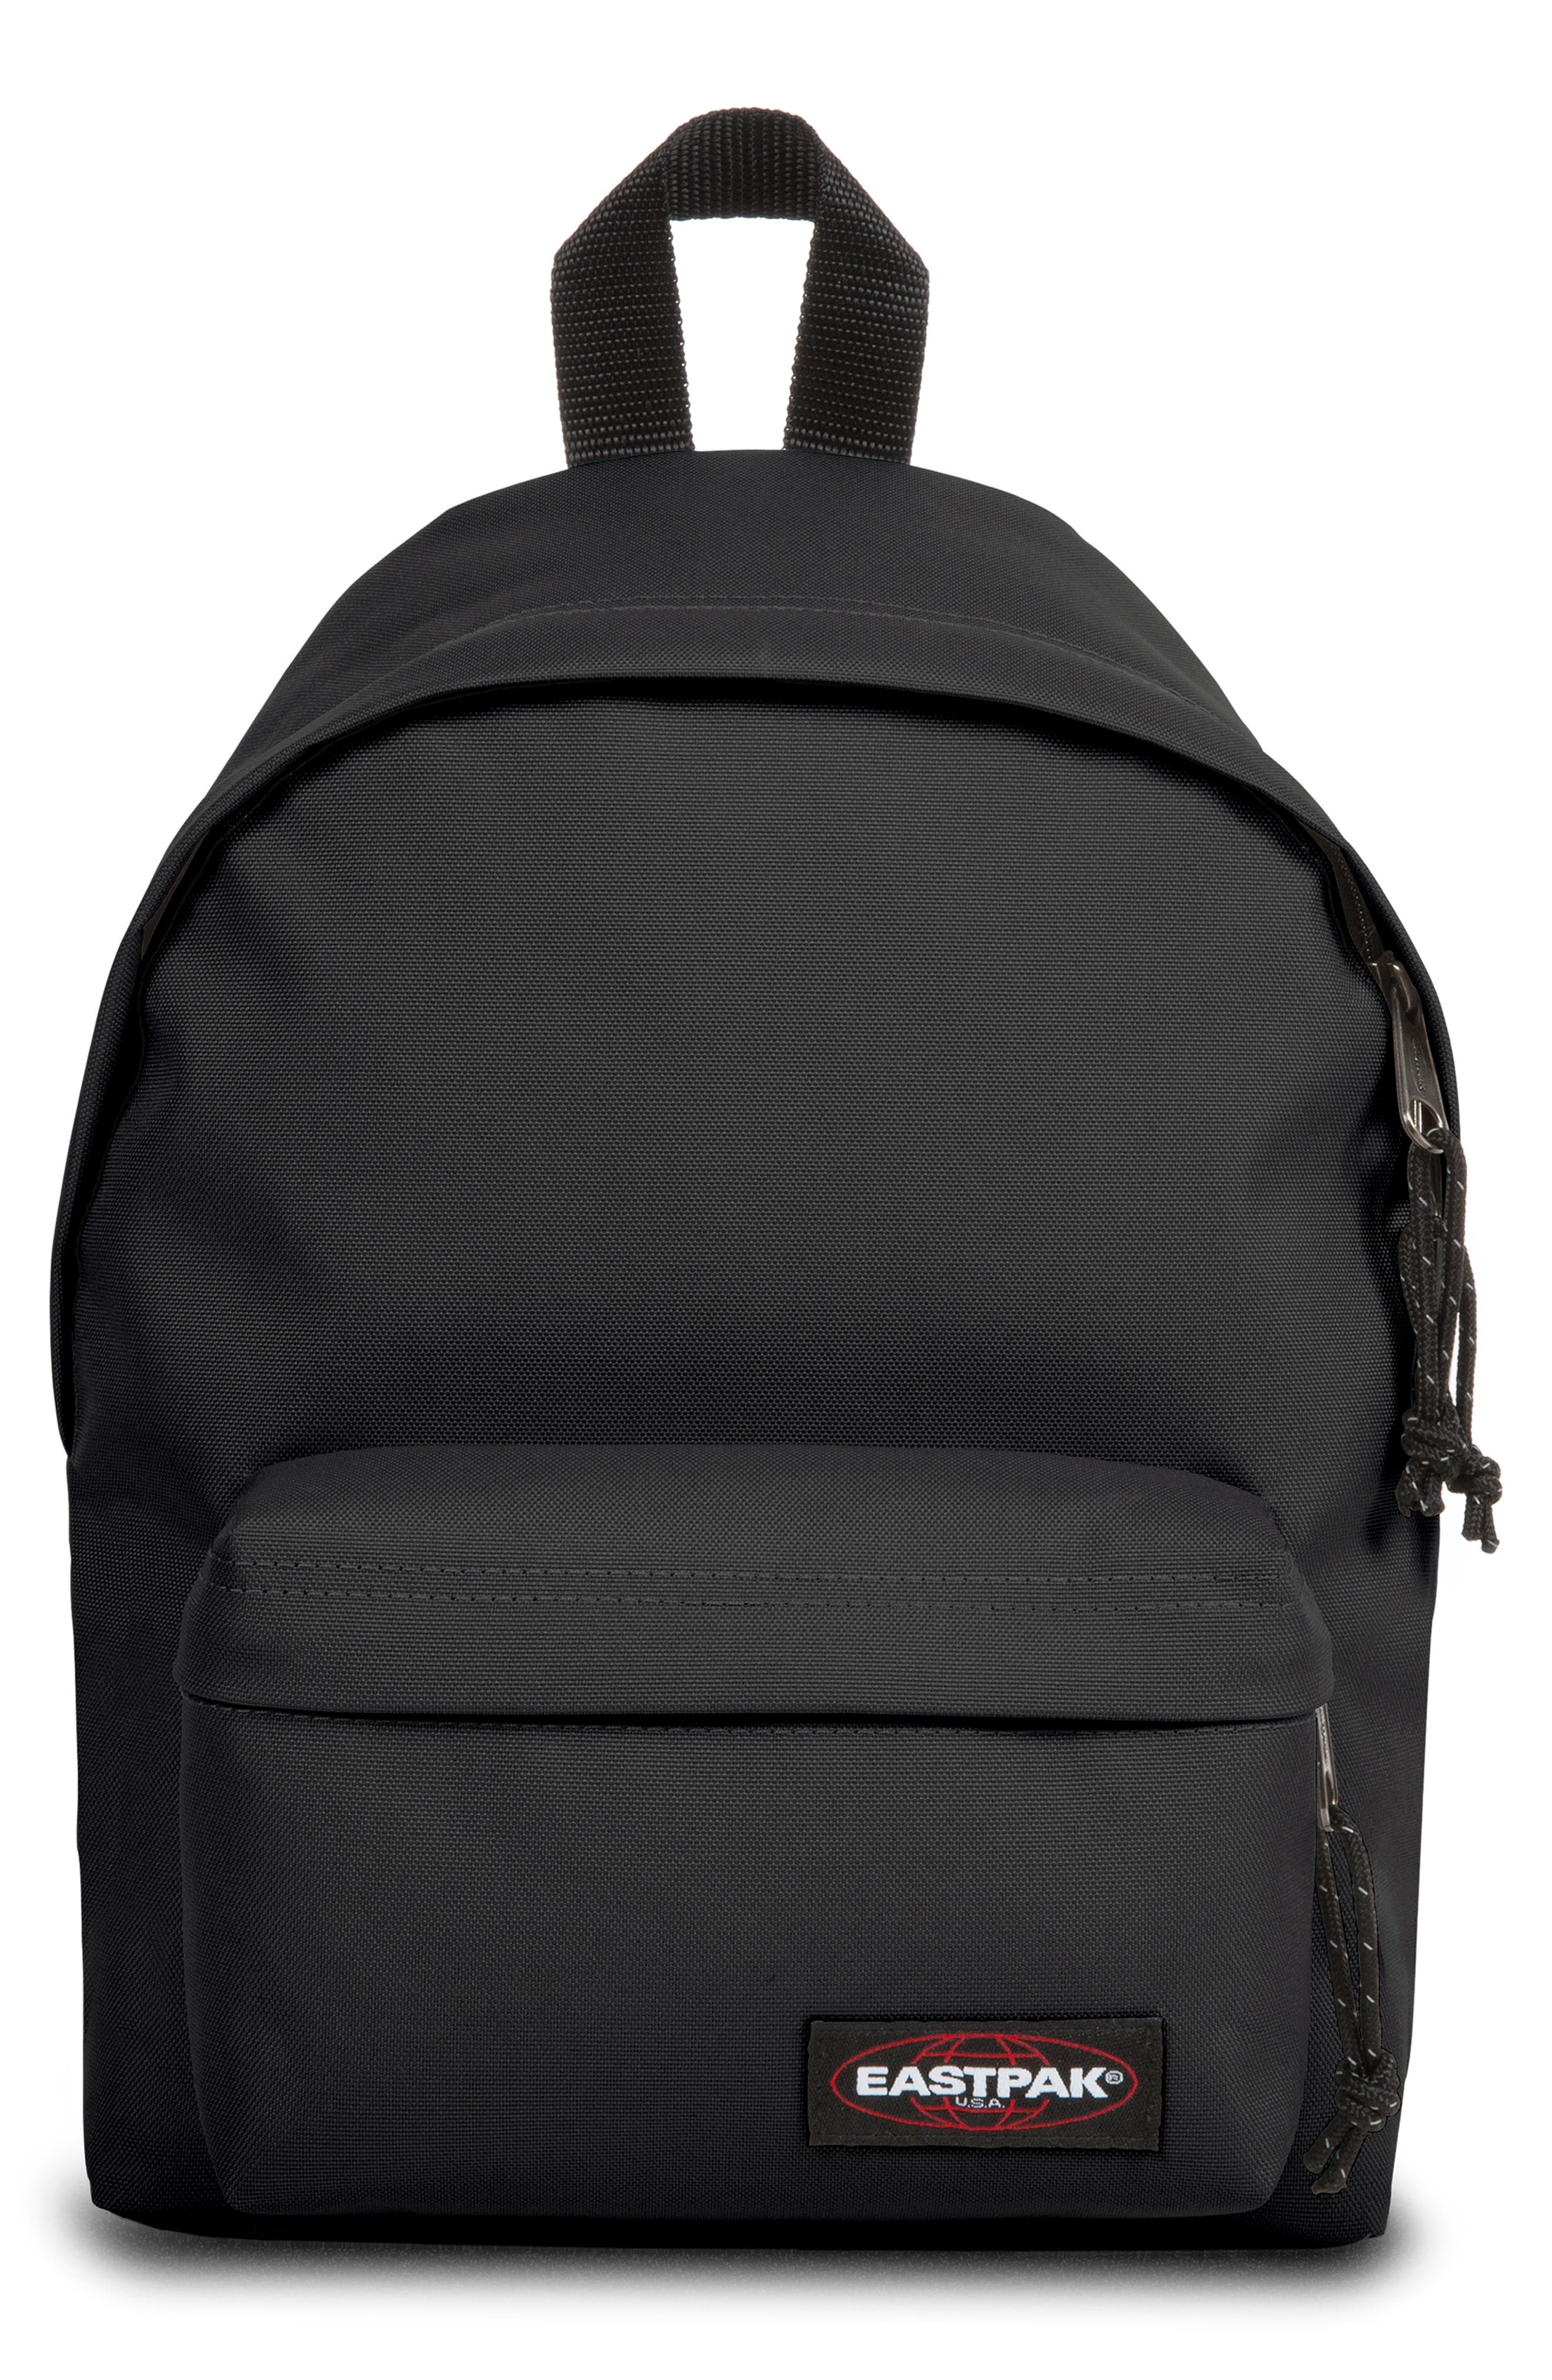 EASTPACK ORBIT CANVAS BACKPACK - BLACK